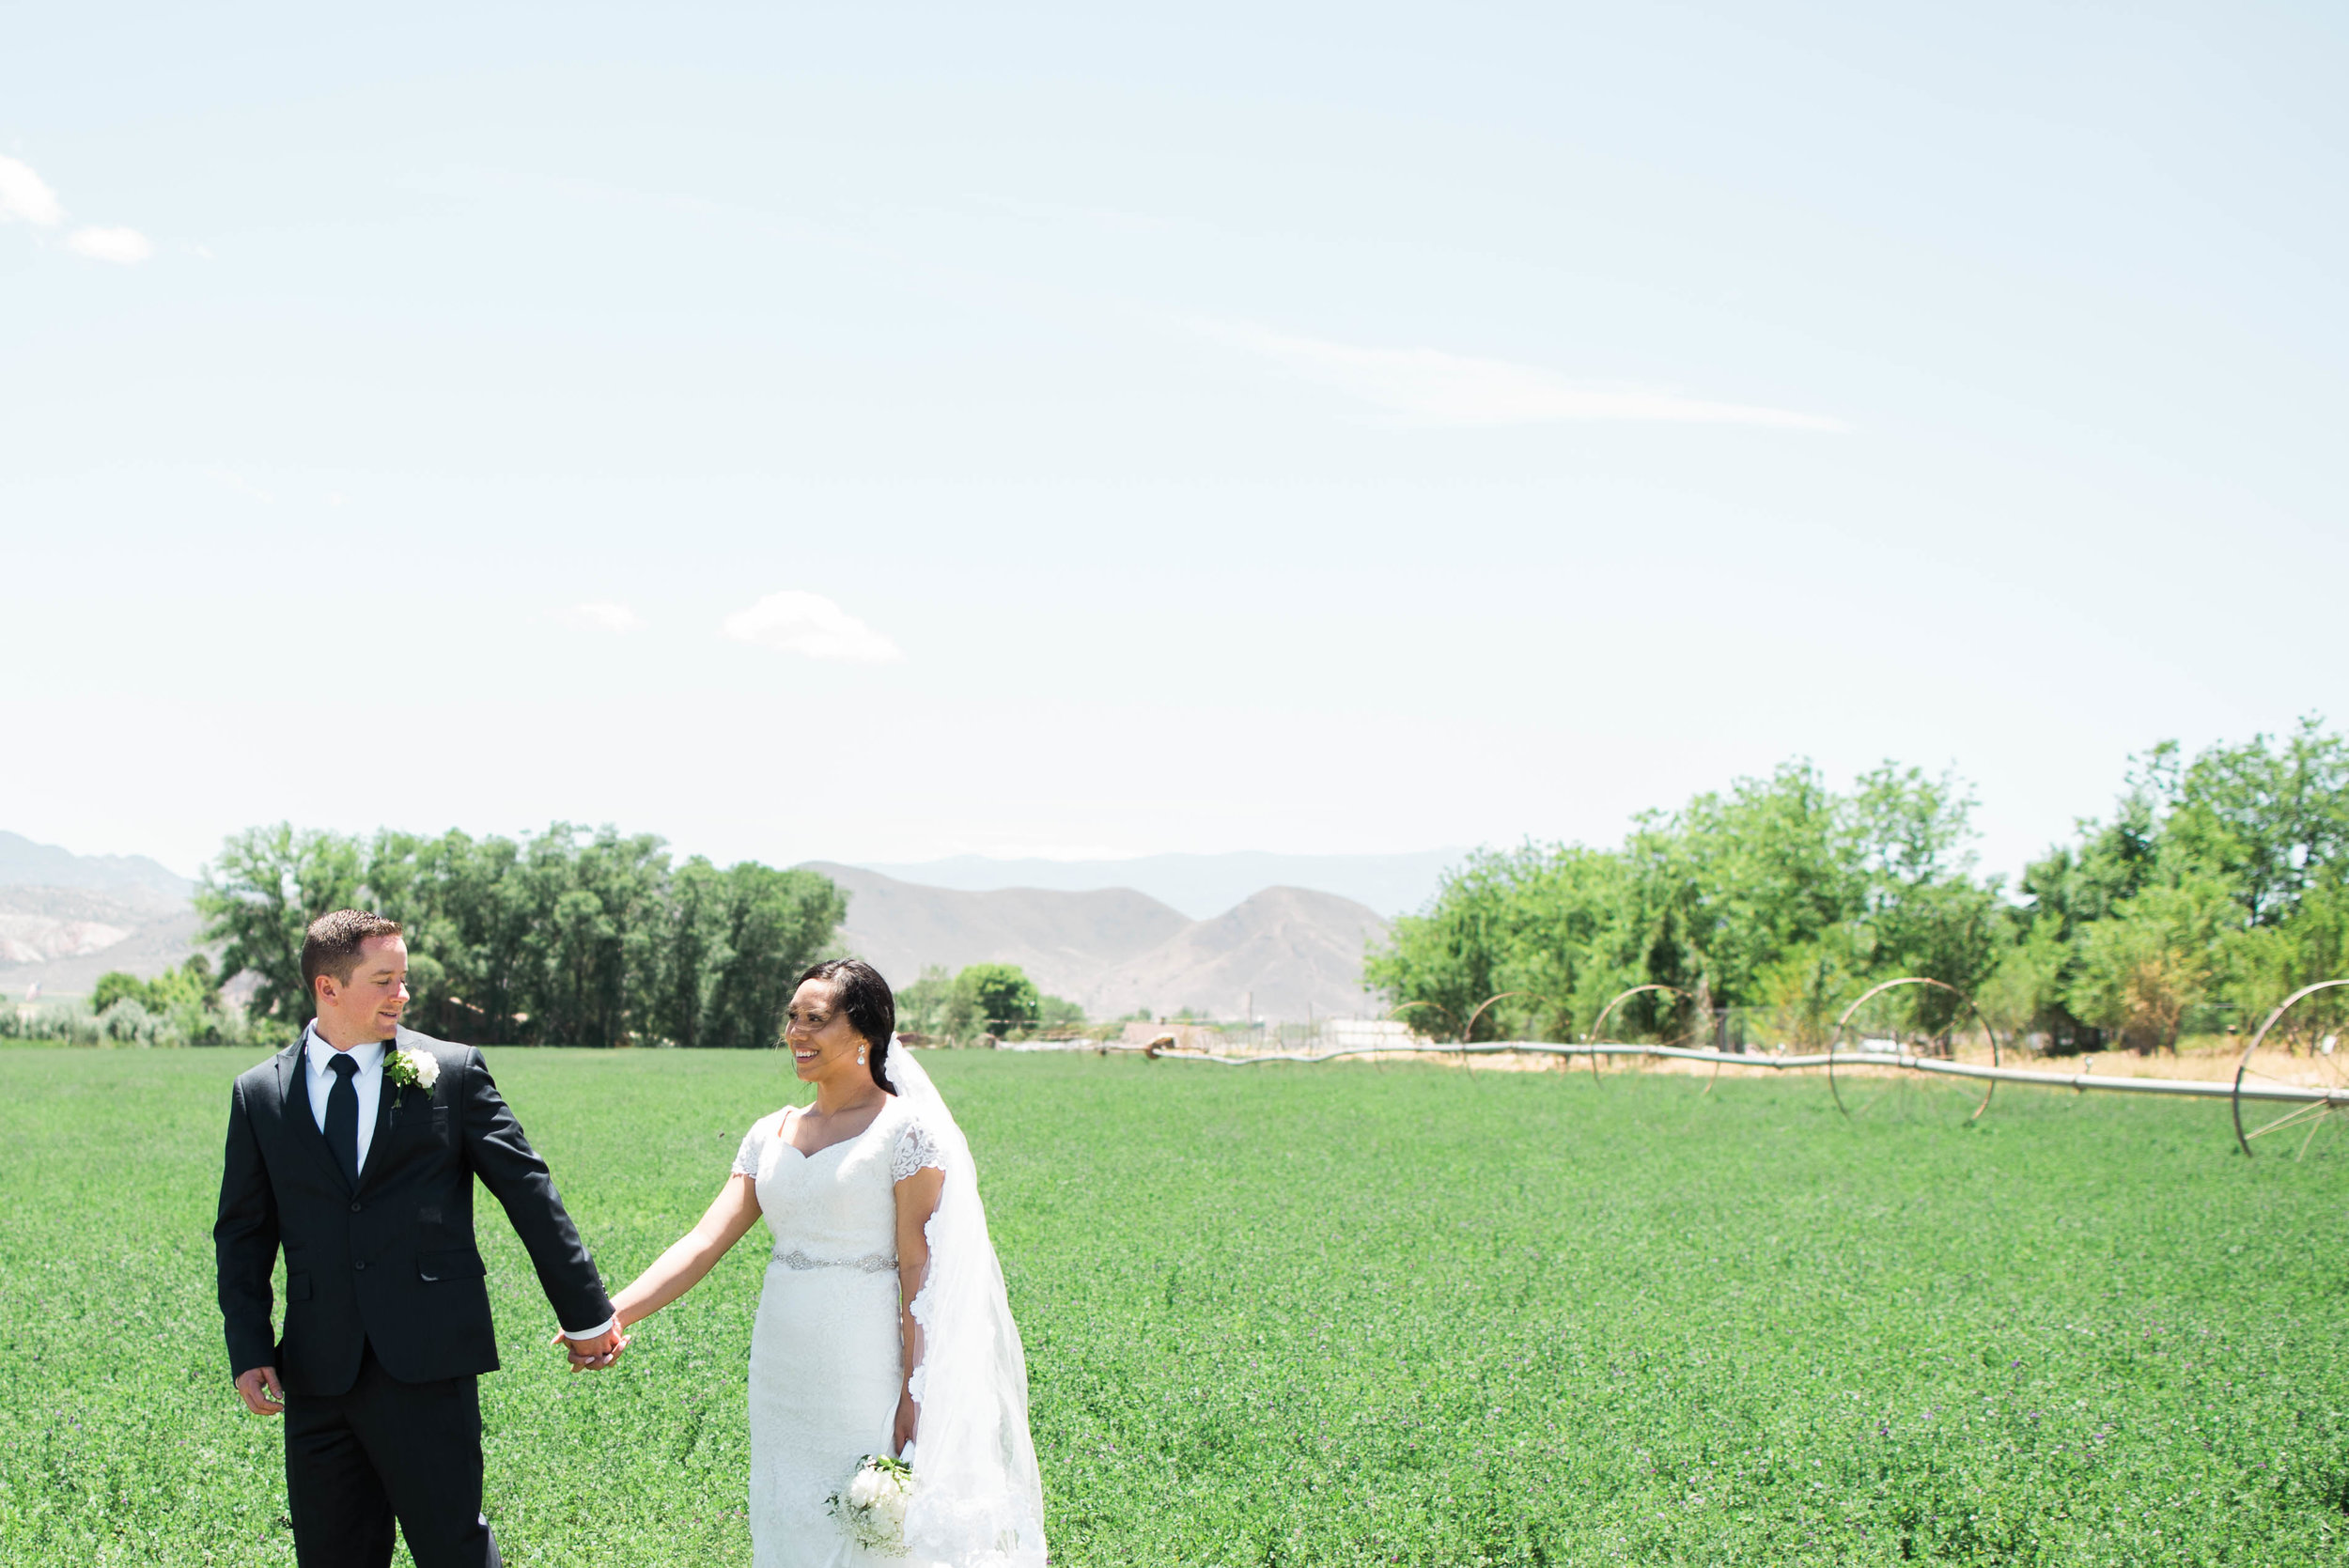 M+J-WEDDING-DAY-Sadie_Banks_Photography-475.jpg